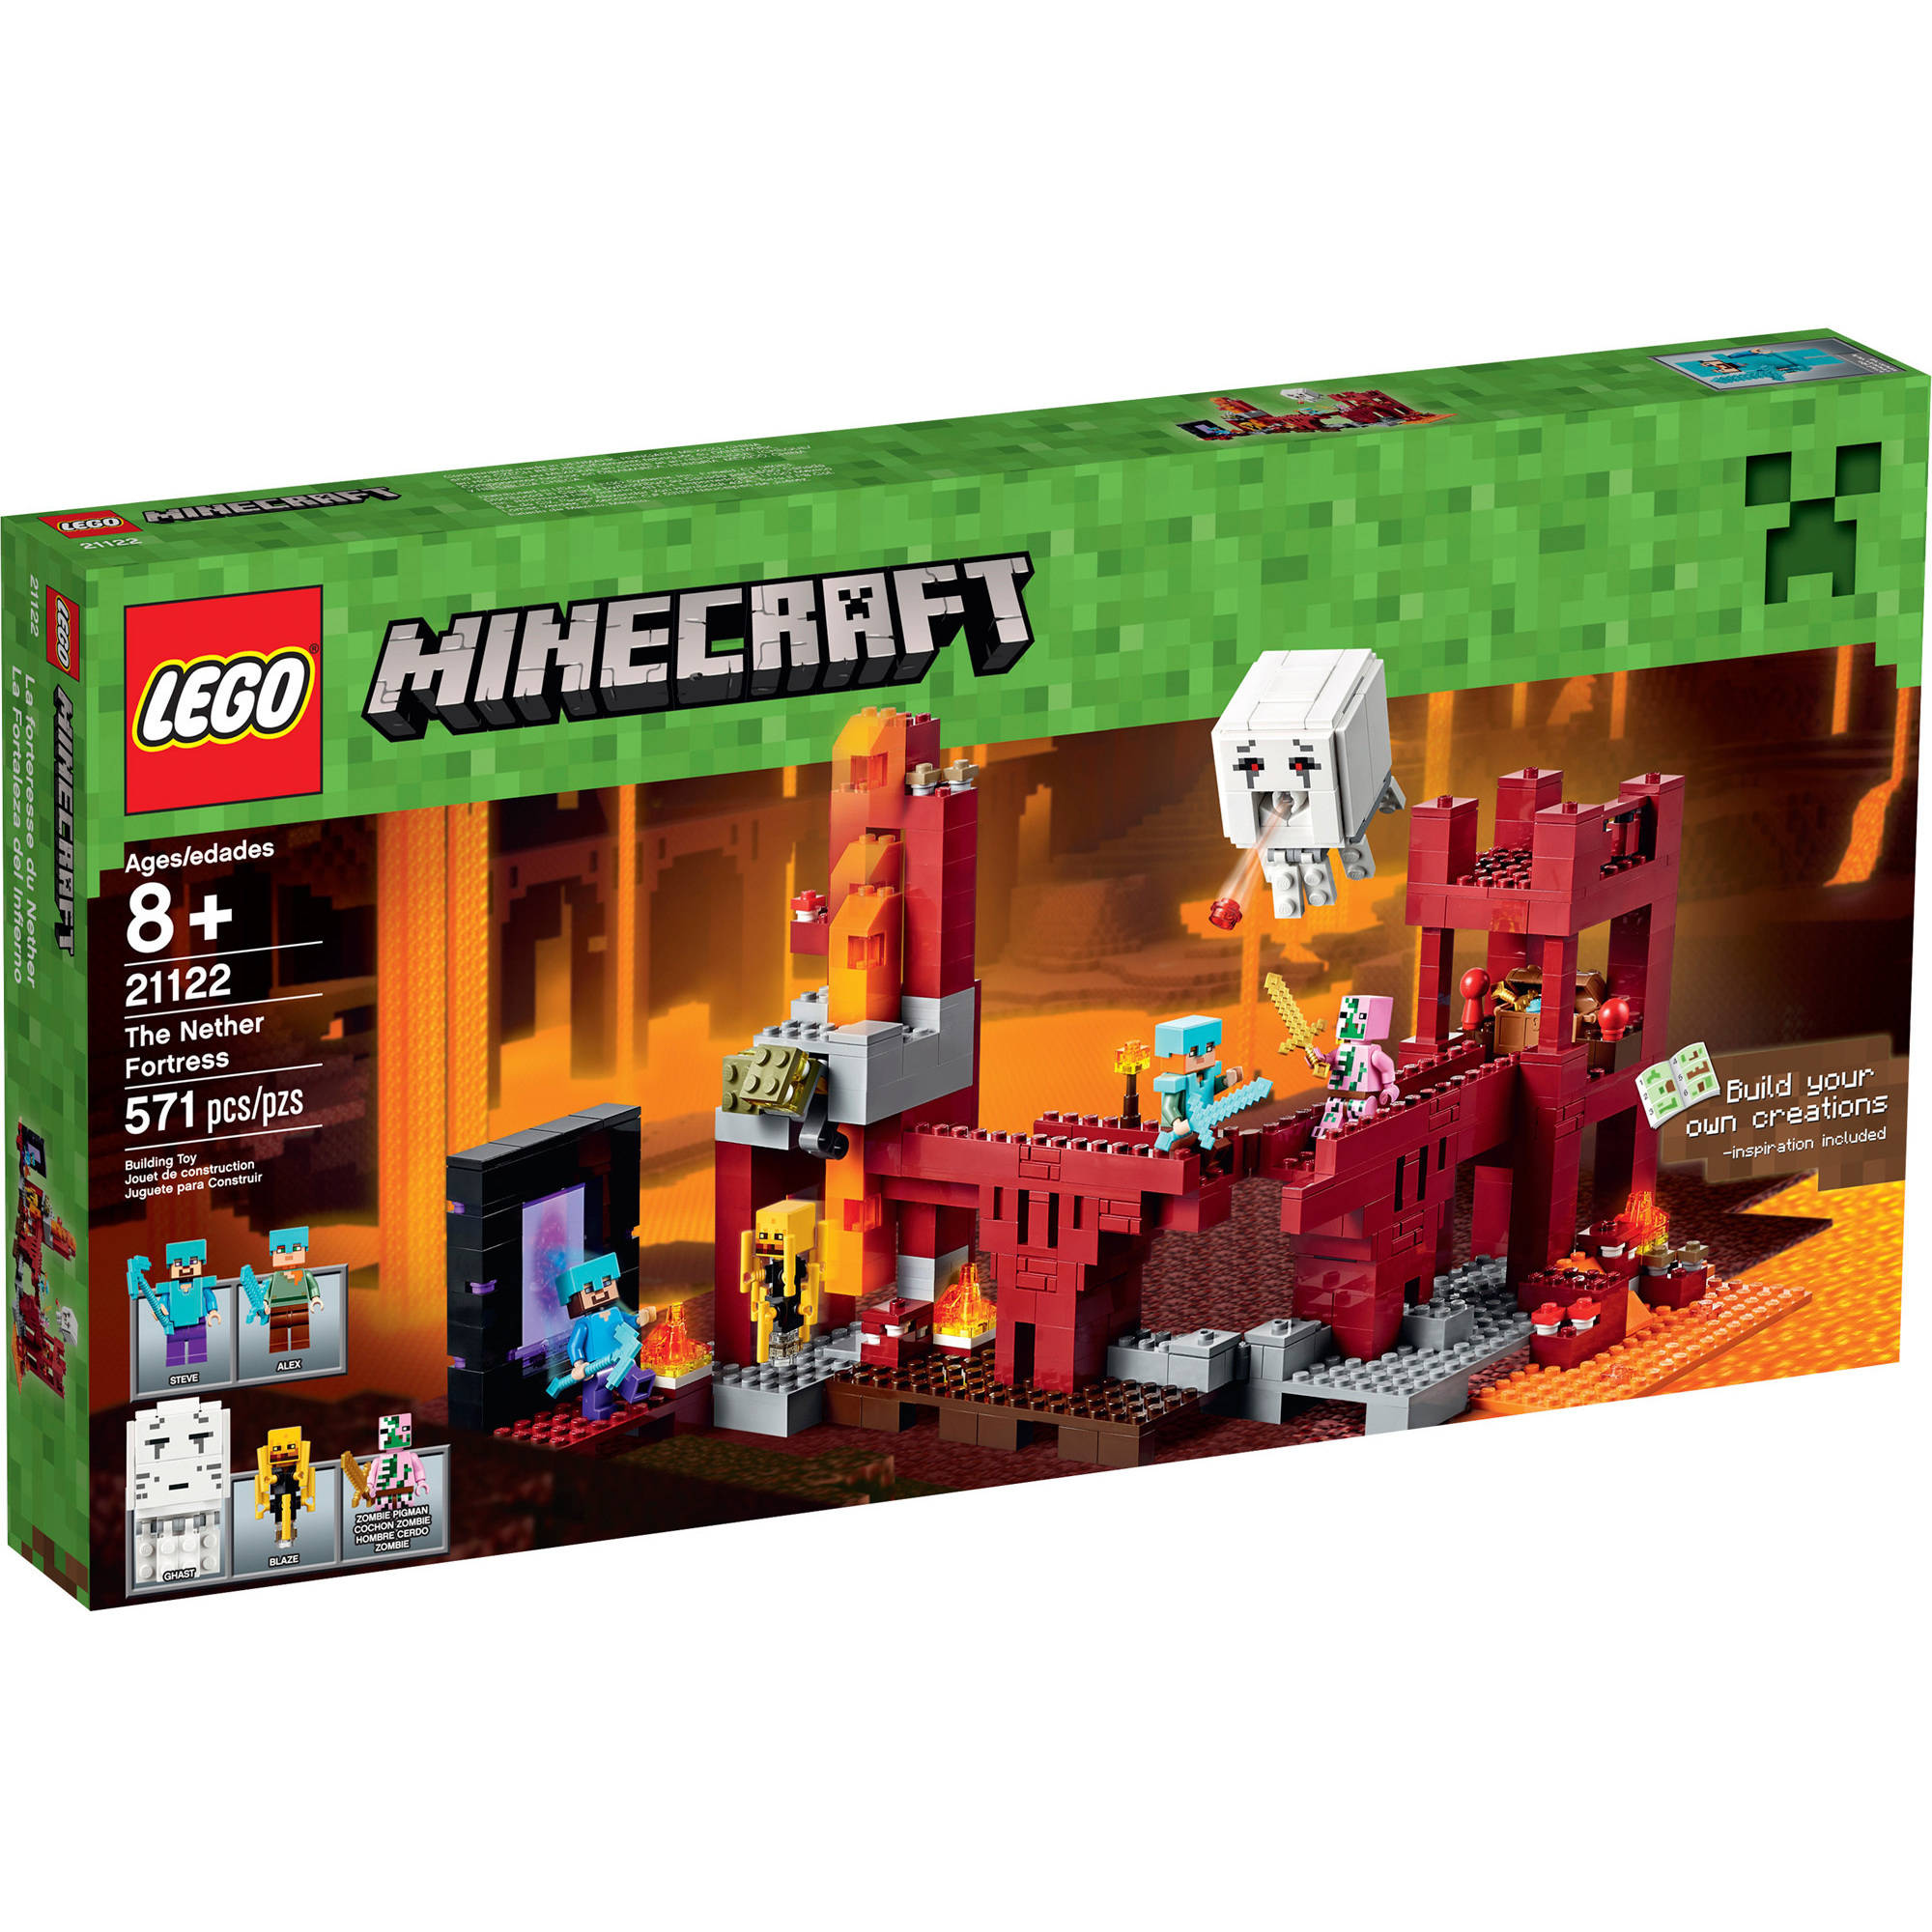 Lego Minecraft The Nether Fortress, 21122 by LEGO Systems, Inc.